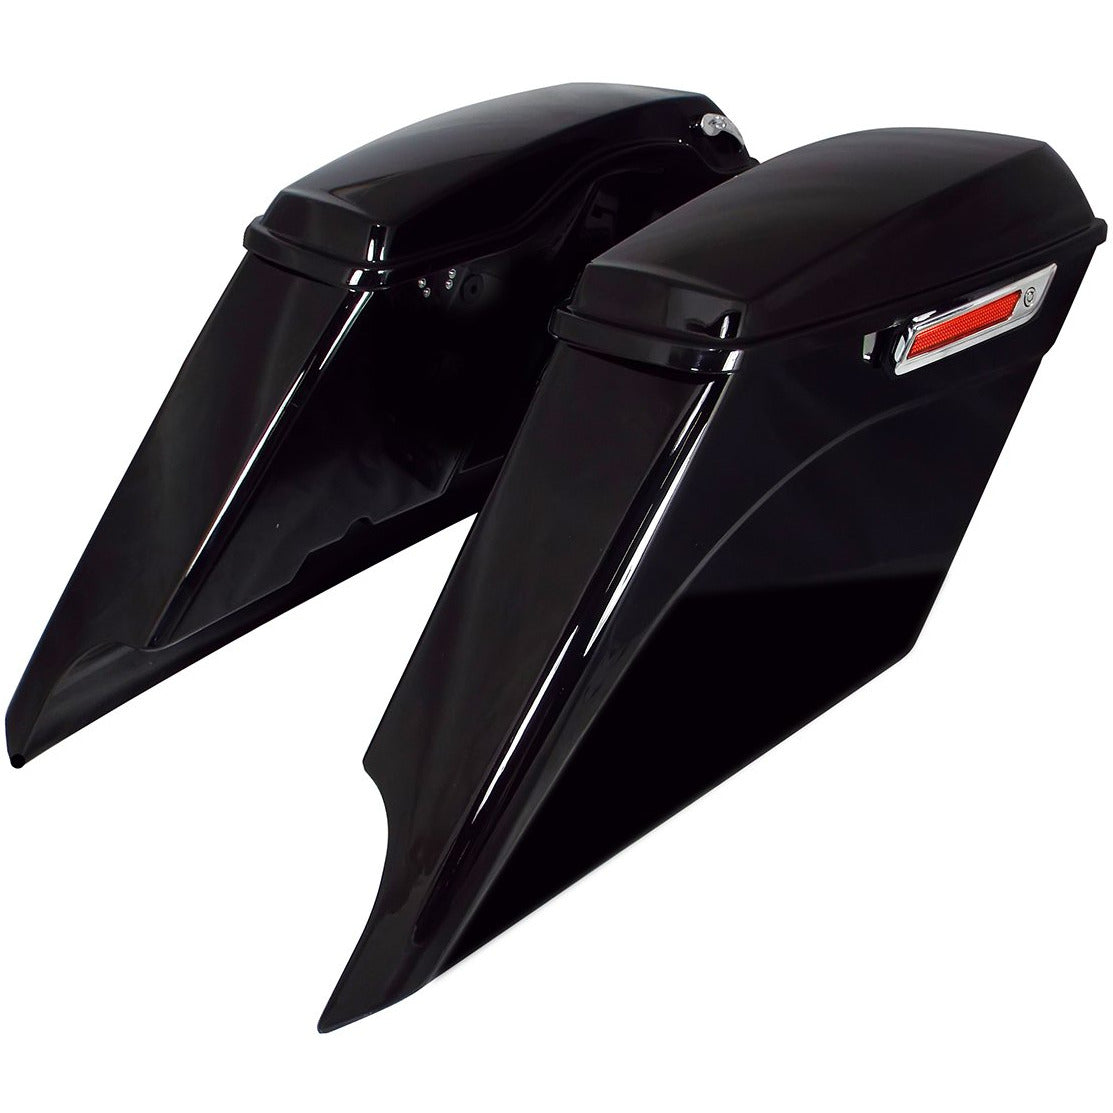 Bagger Brothers Saddlebag Complete Extended Kit 5 Down 5 Out Dual exhaust cut-outs Fits 2014-2021 Harley-Davidson FL Models